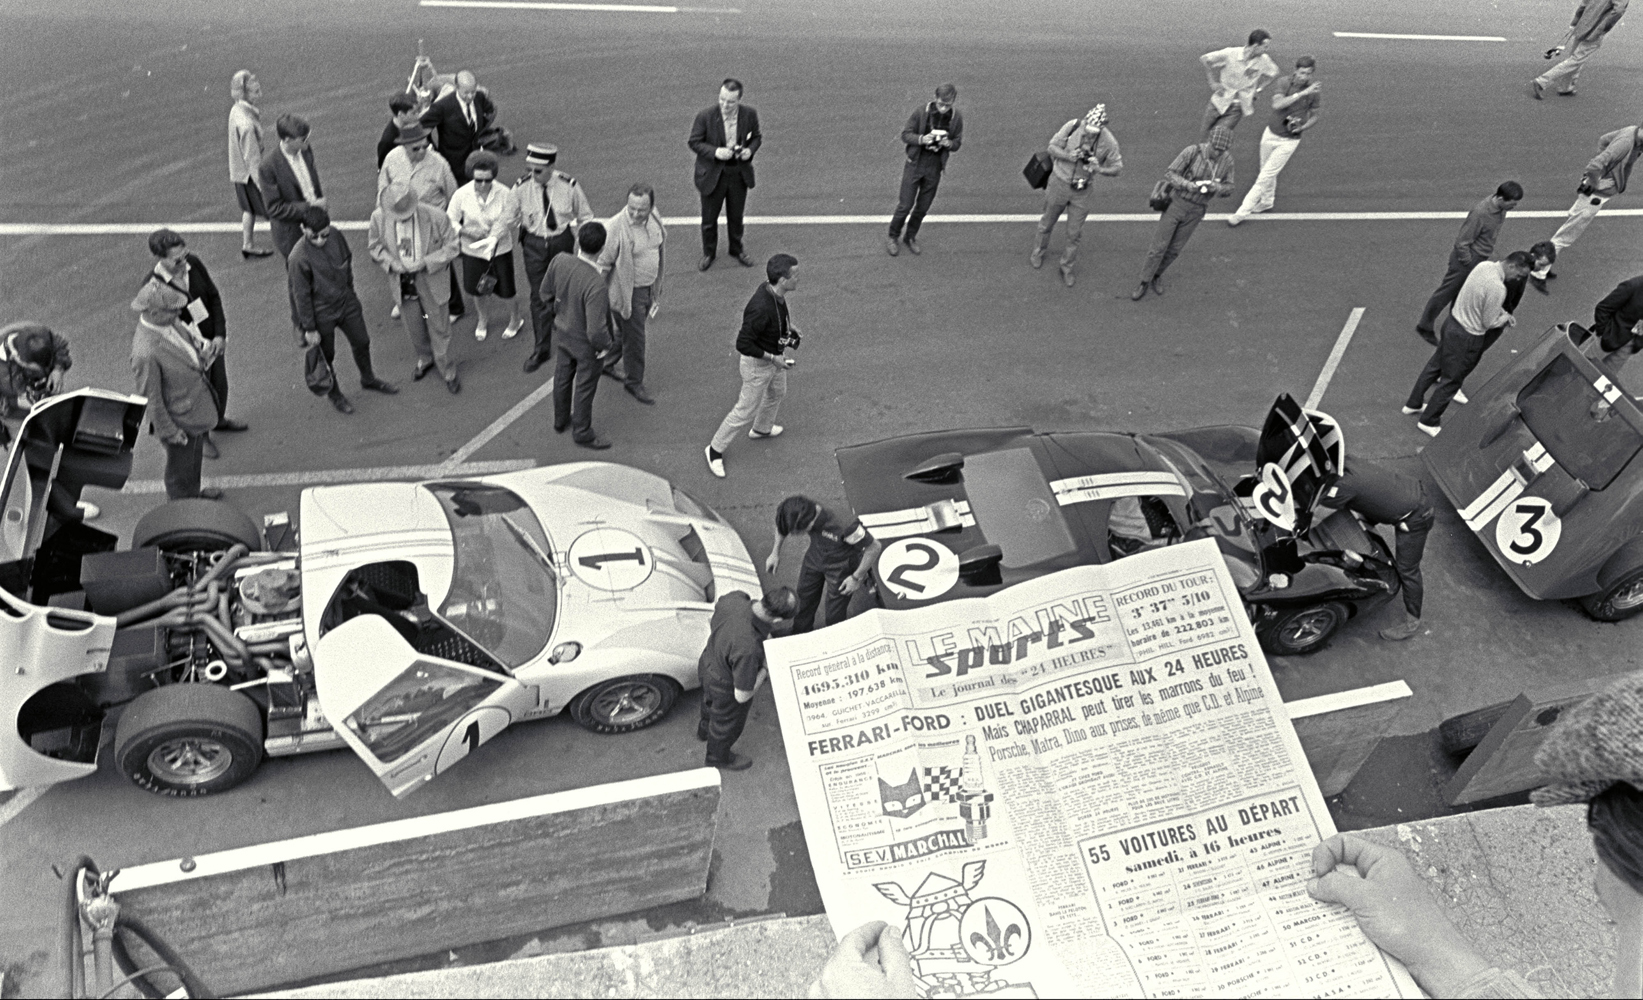 24 Hours of LeMans, LeMans, France, 1966